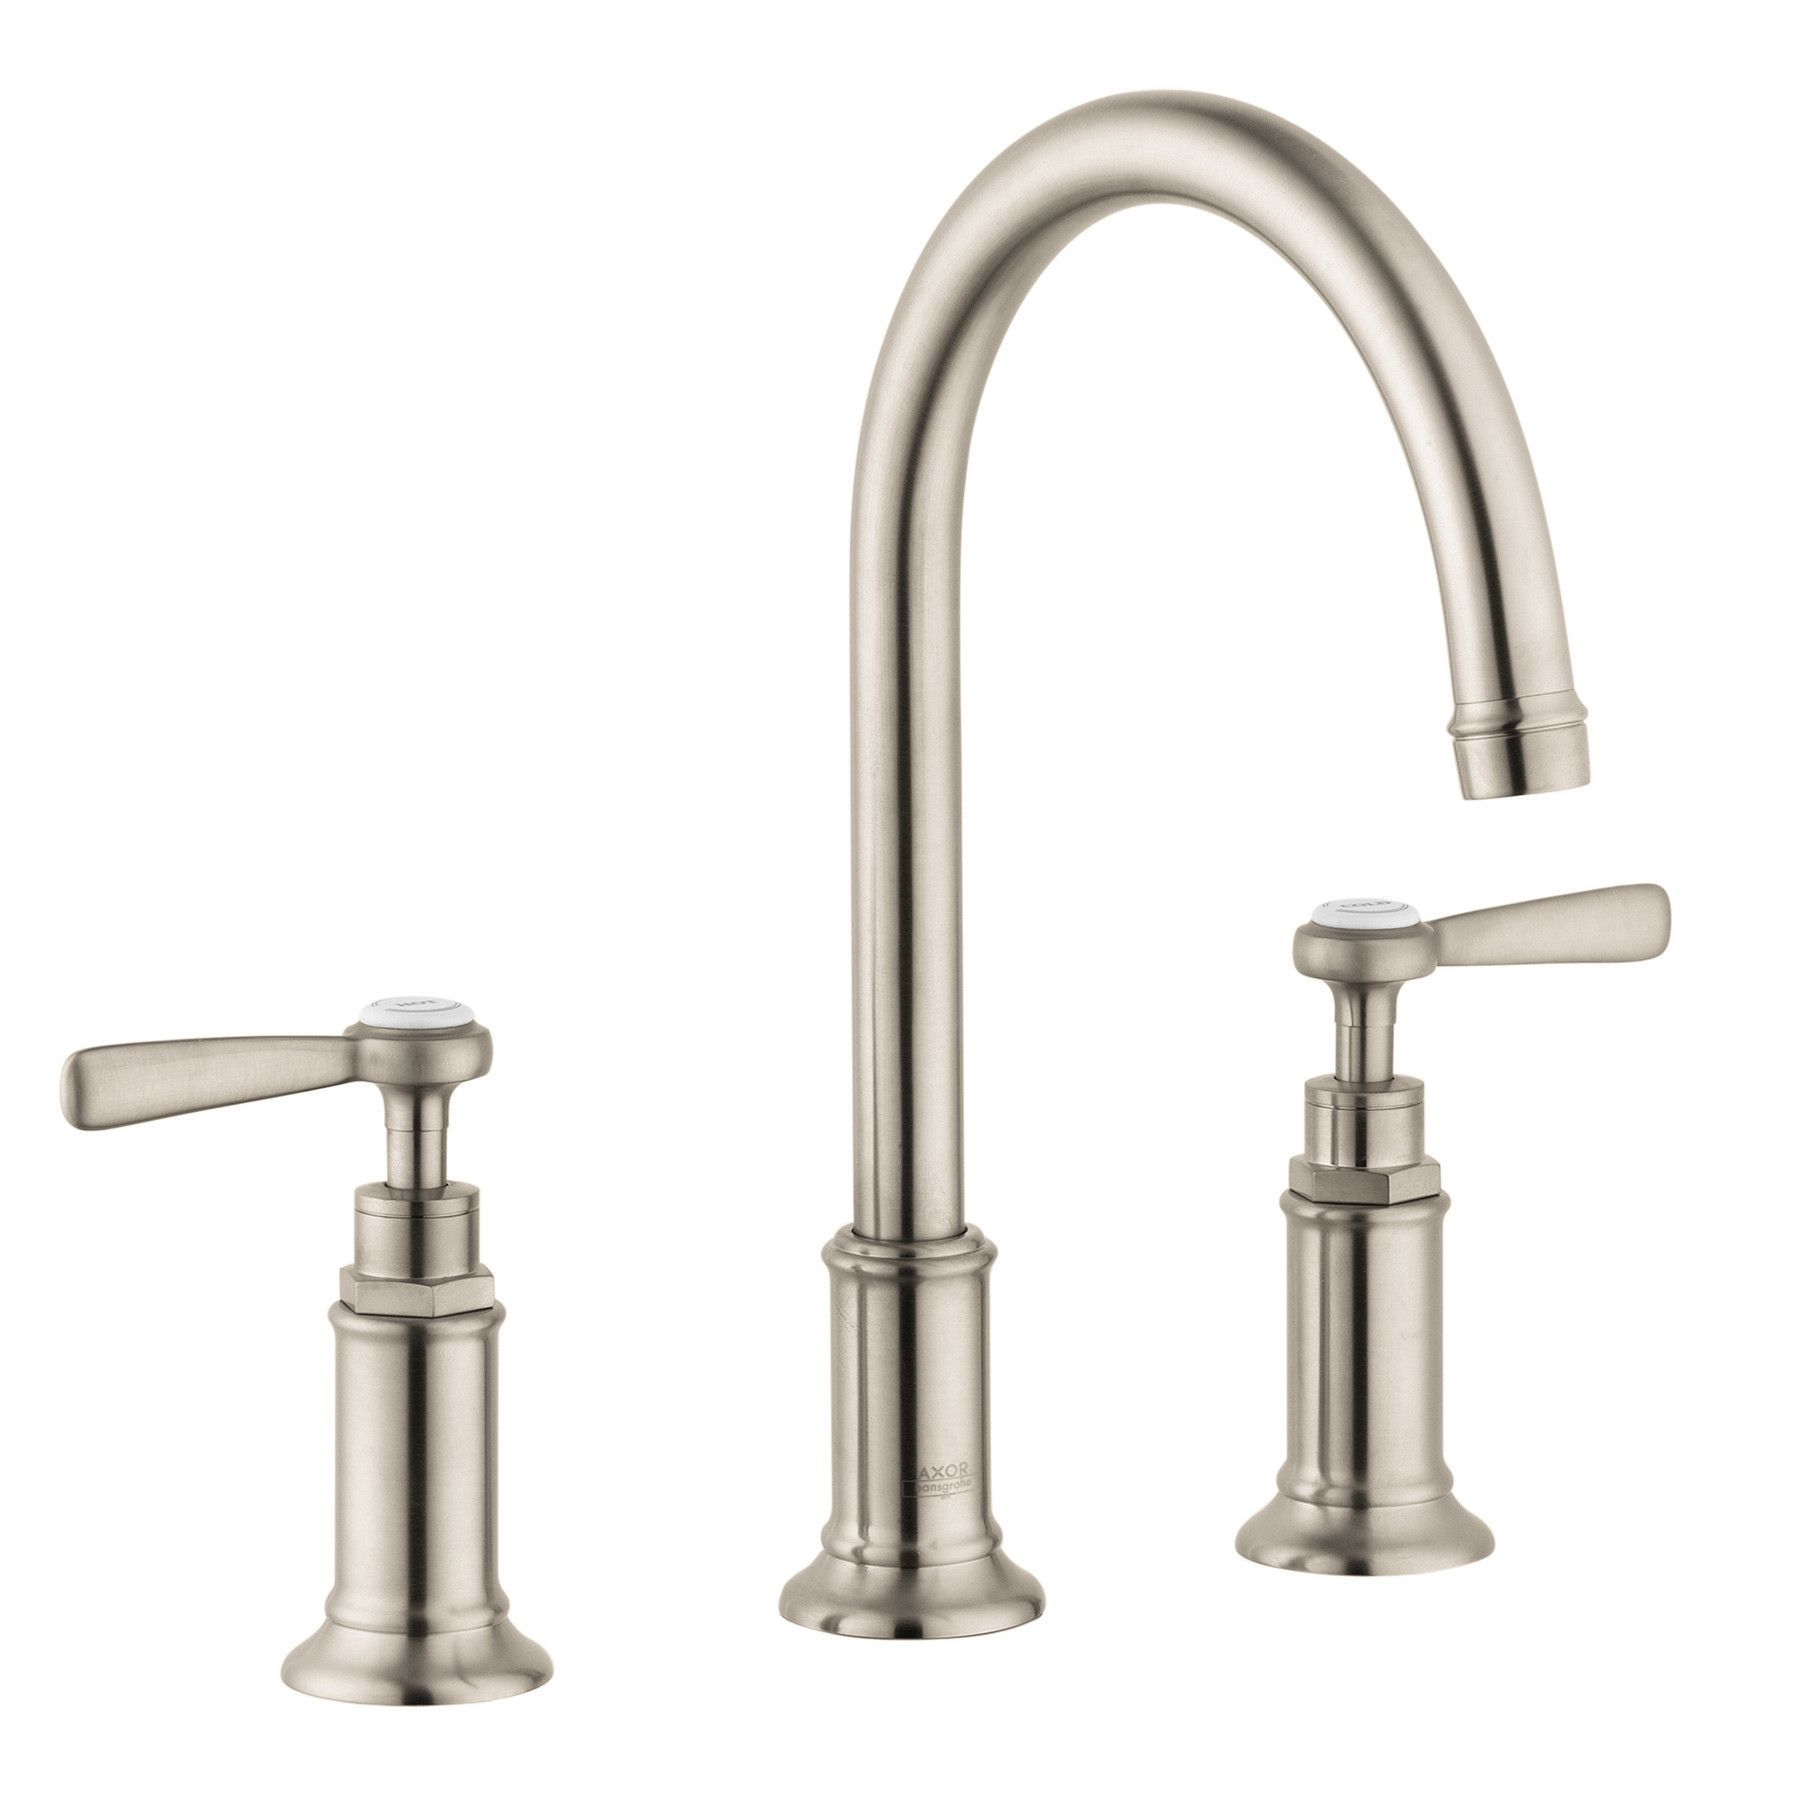 Hansgrohe Axor 16514001 Chrome Montreux Bathroom Faucet Widespread